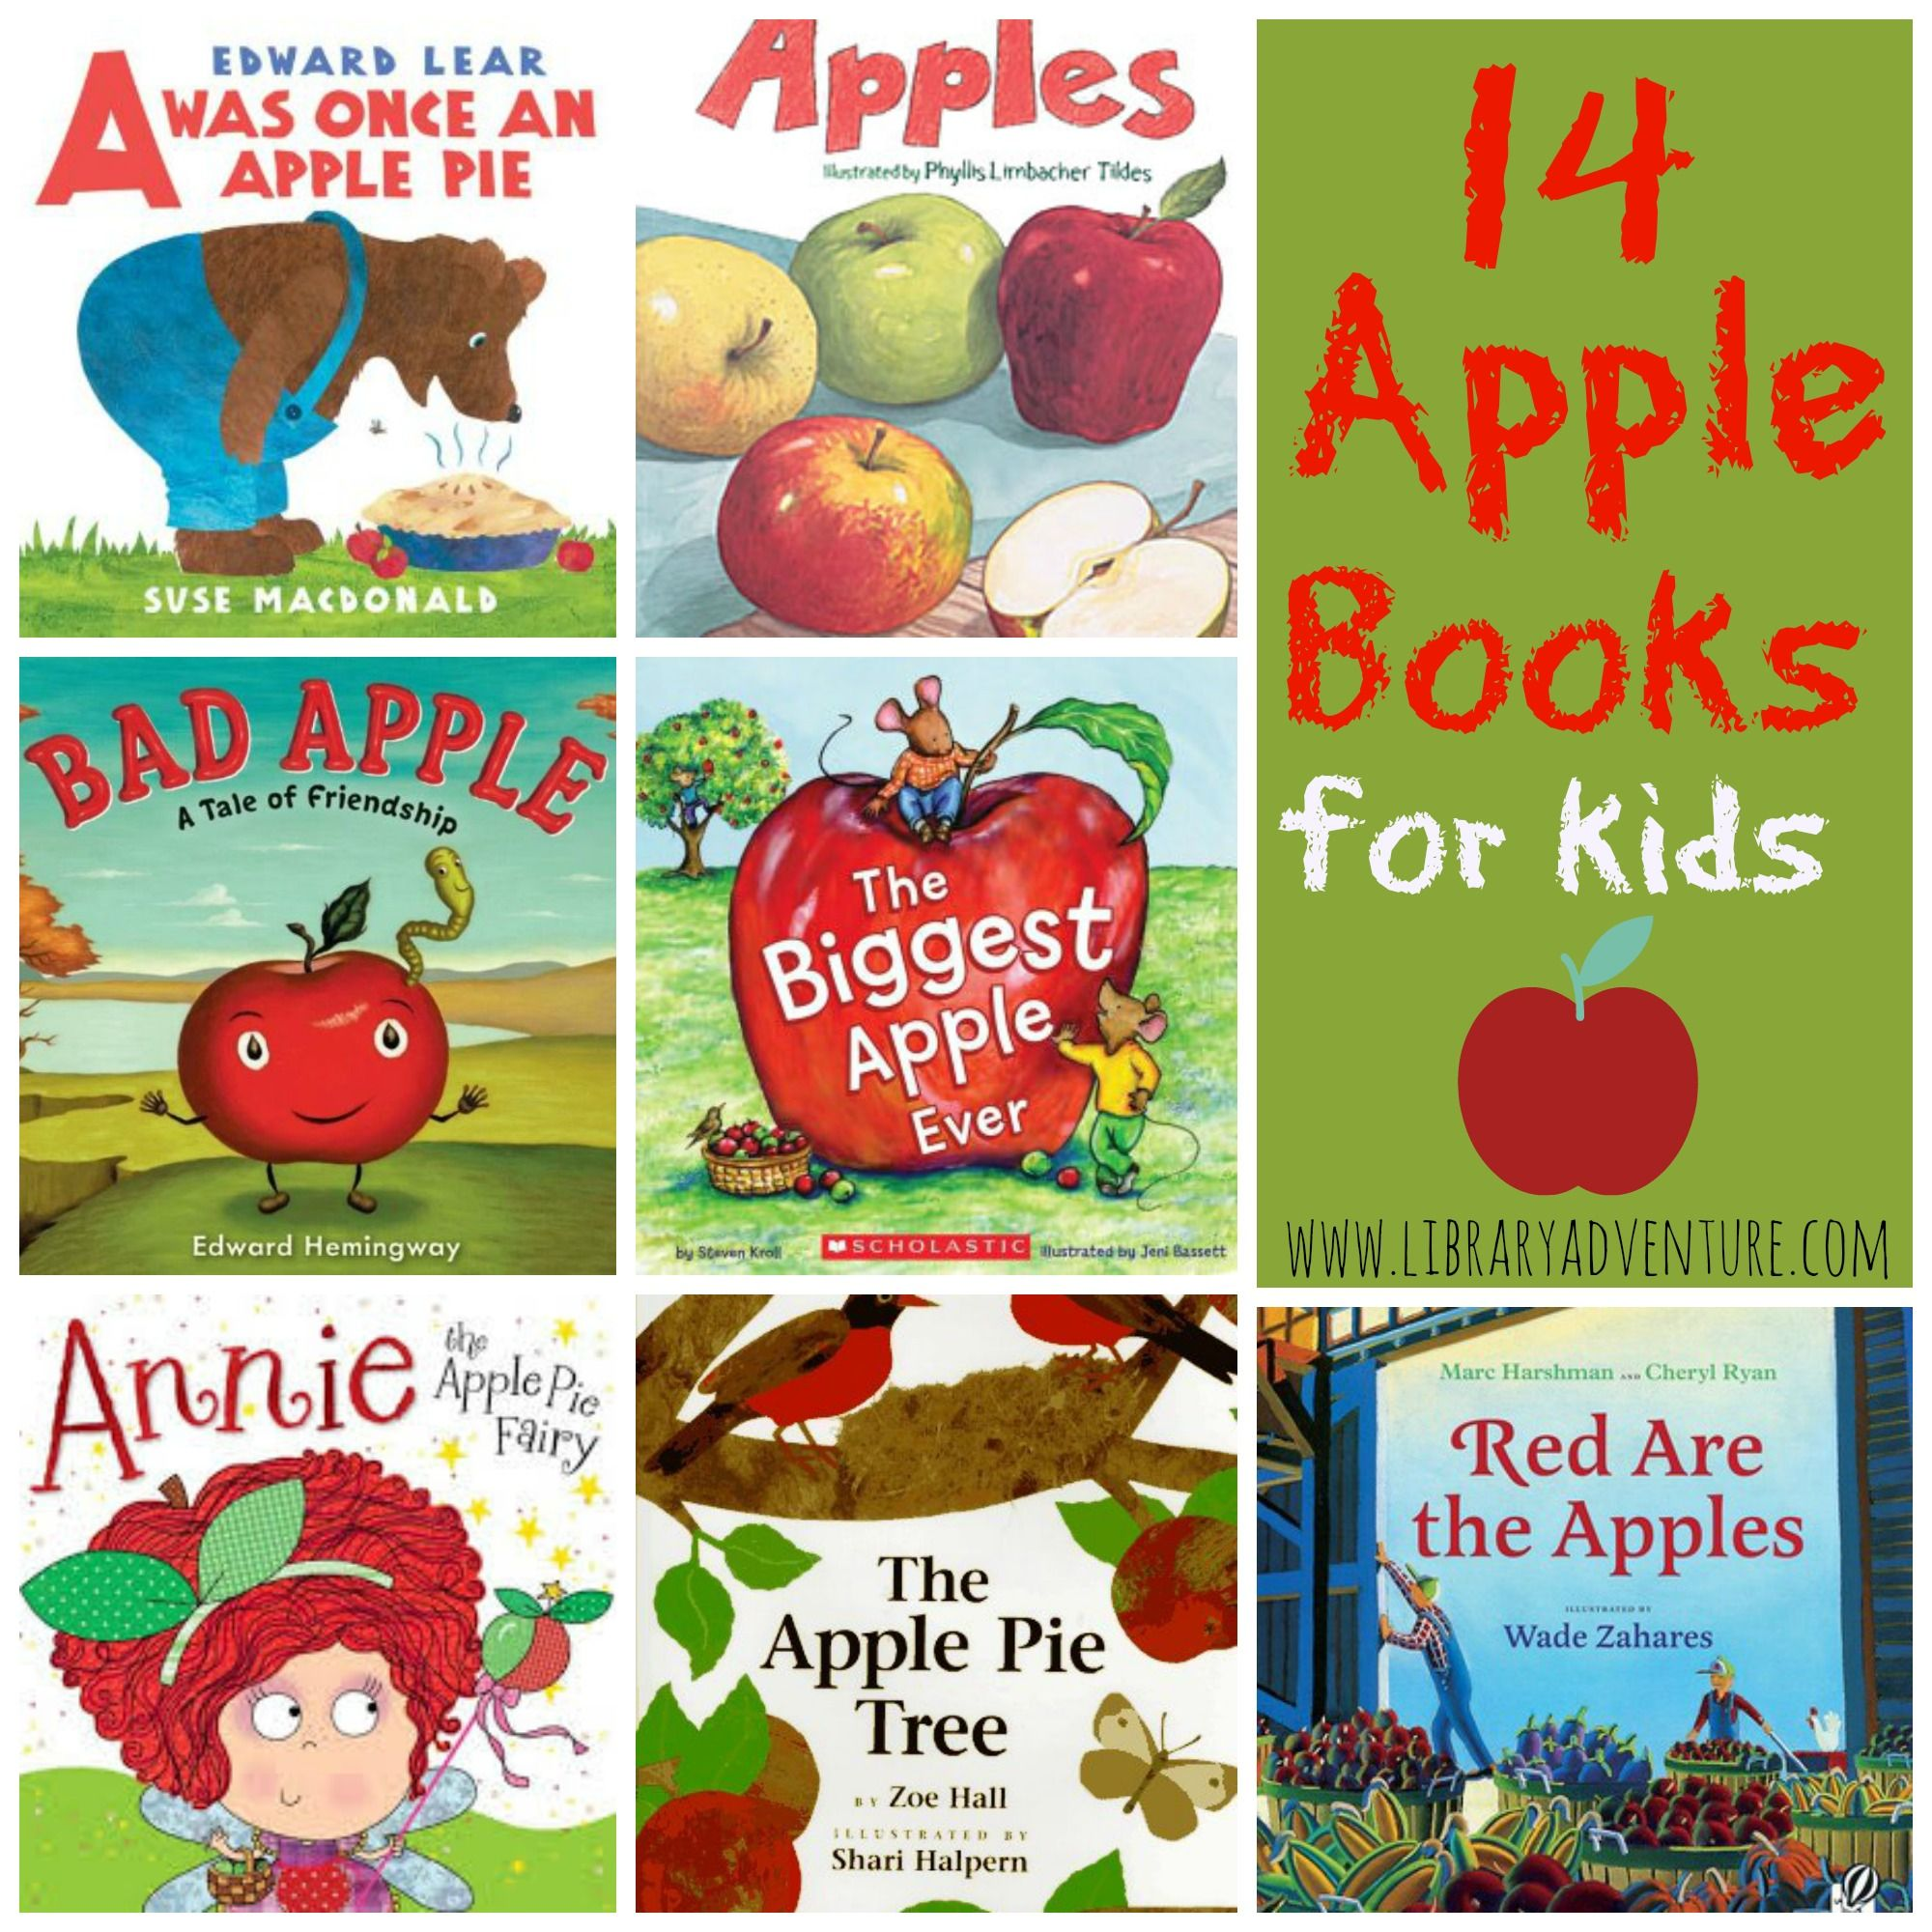 14 Apple Books For Kids